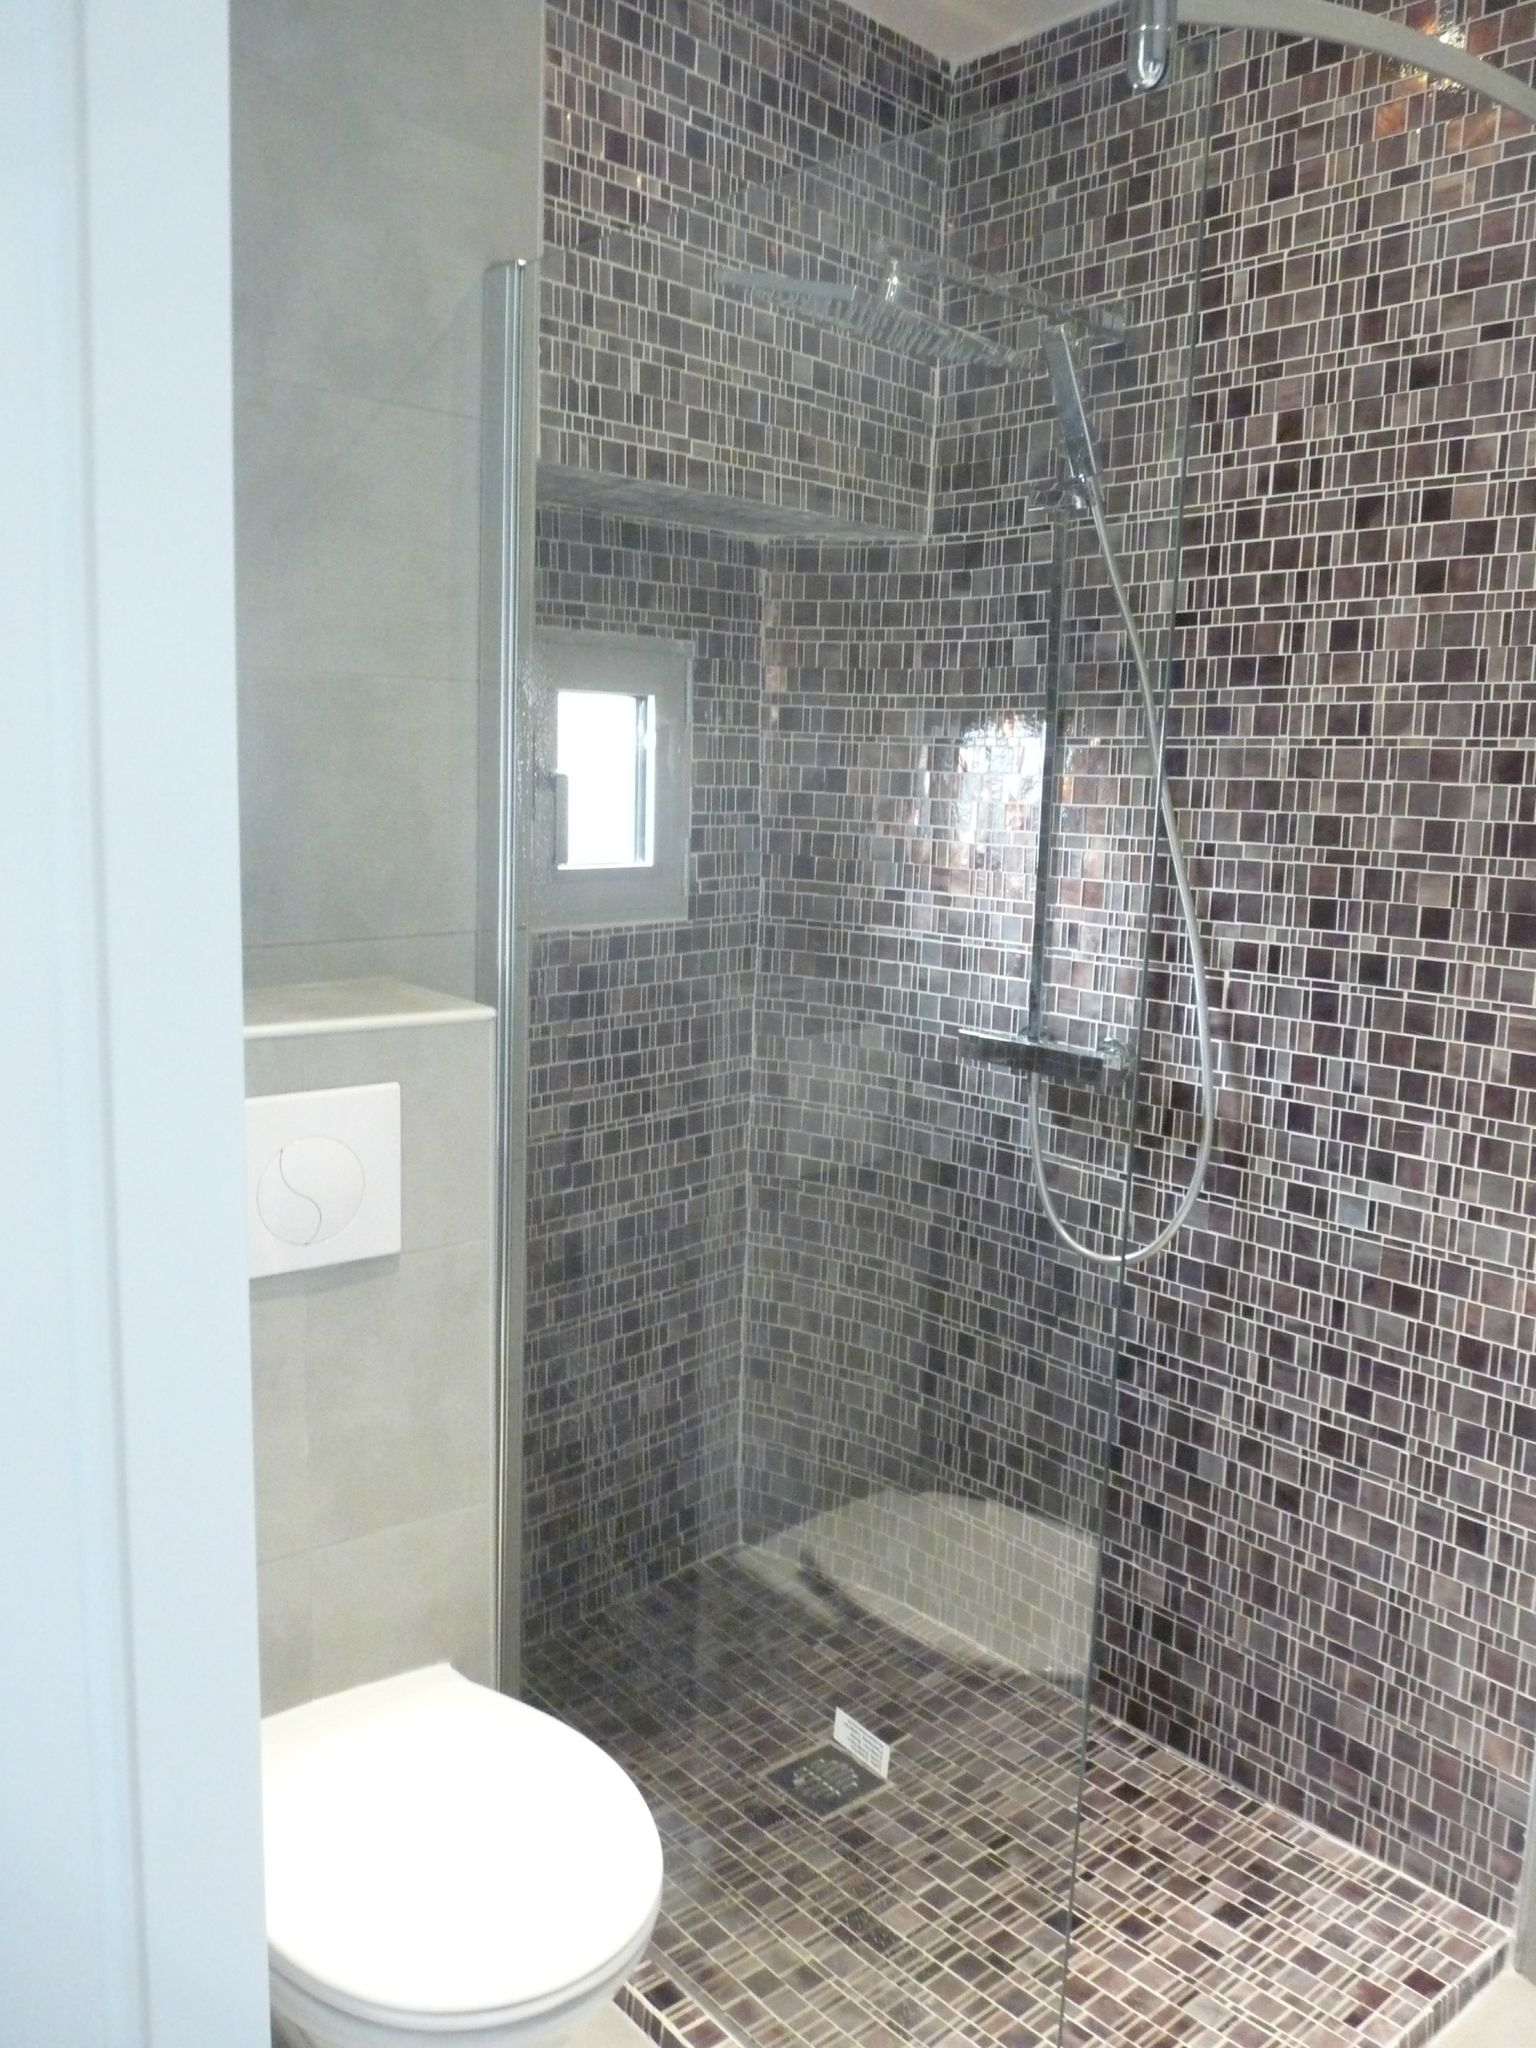 Conception et renovation d 39 une salle de bain stinside architecture d 39 int rieur for Salle de bain occasion tunisie